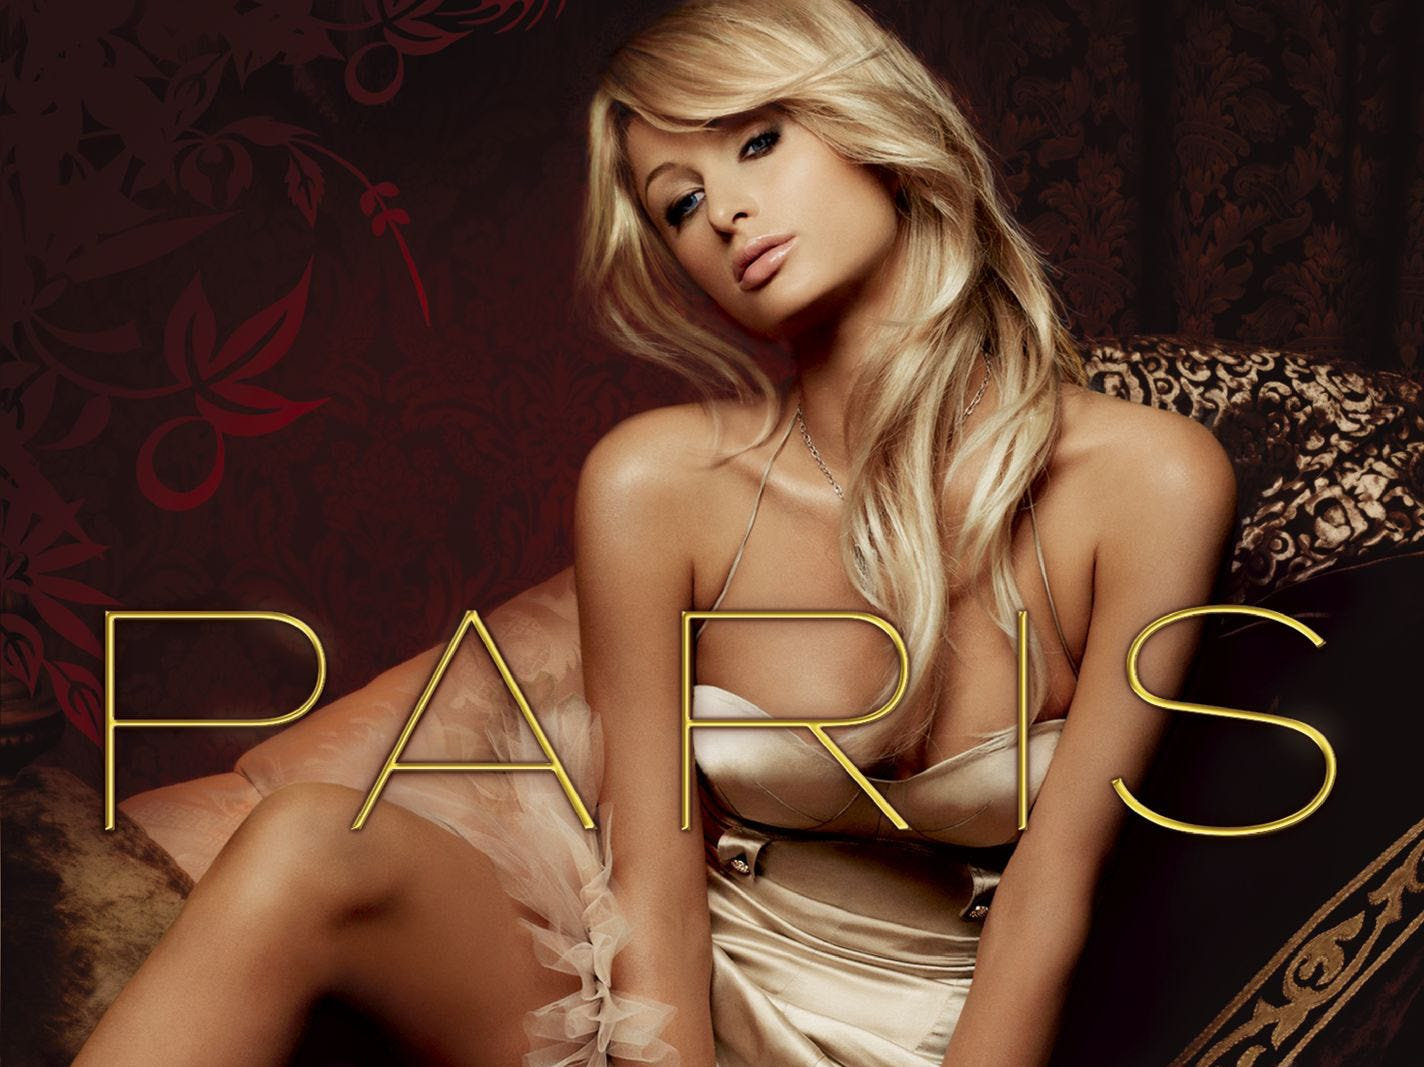 Music album cover art for Paris, the first cd release by Paris Hilton --- DATE TAKEN: rec. 12/06  No Byline   Warner